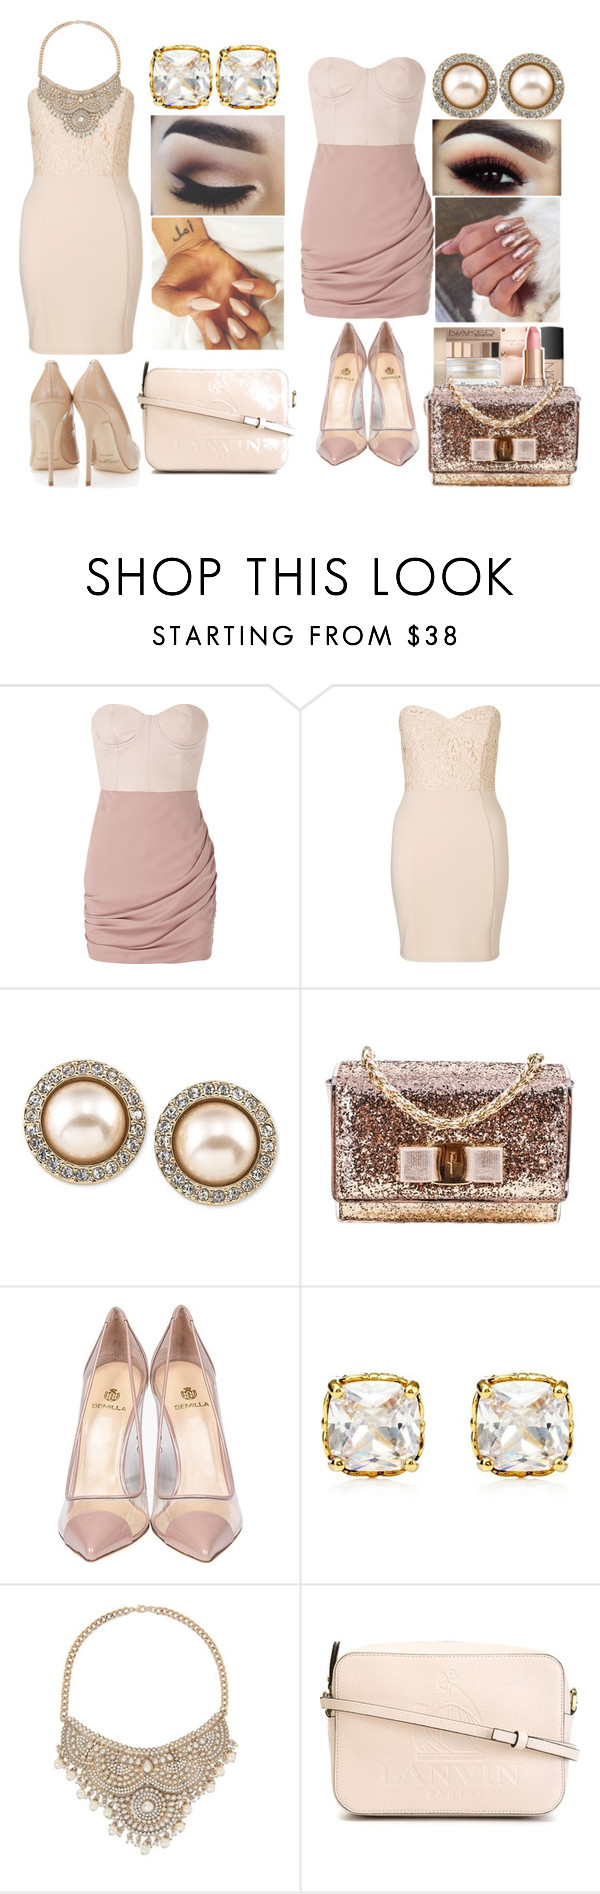 """MoonLight"" by meyarose31 on Polyvore featuring Alice + Olivia, Lipsy, Carolee, Salvatore Ferragamo, Semilla, Juicy Couture, Bebe, castro and Lanvin"